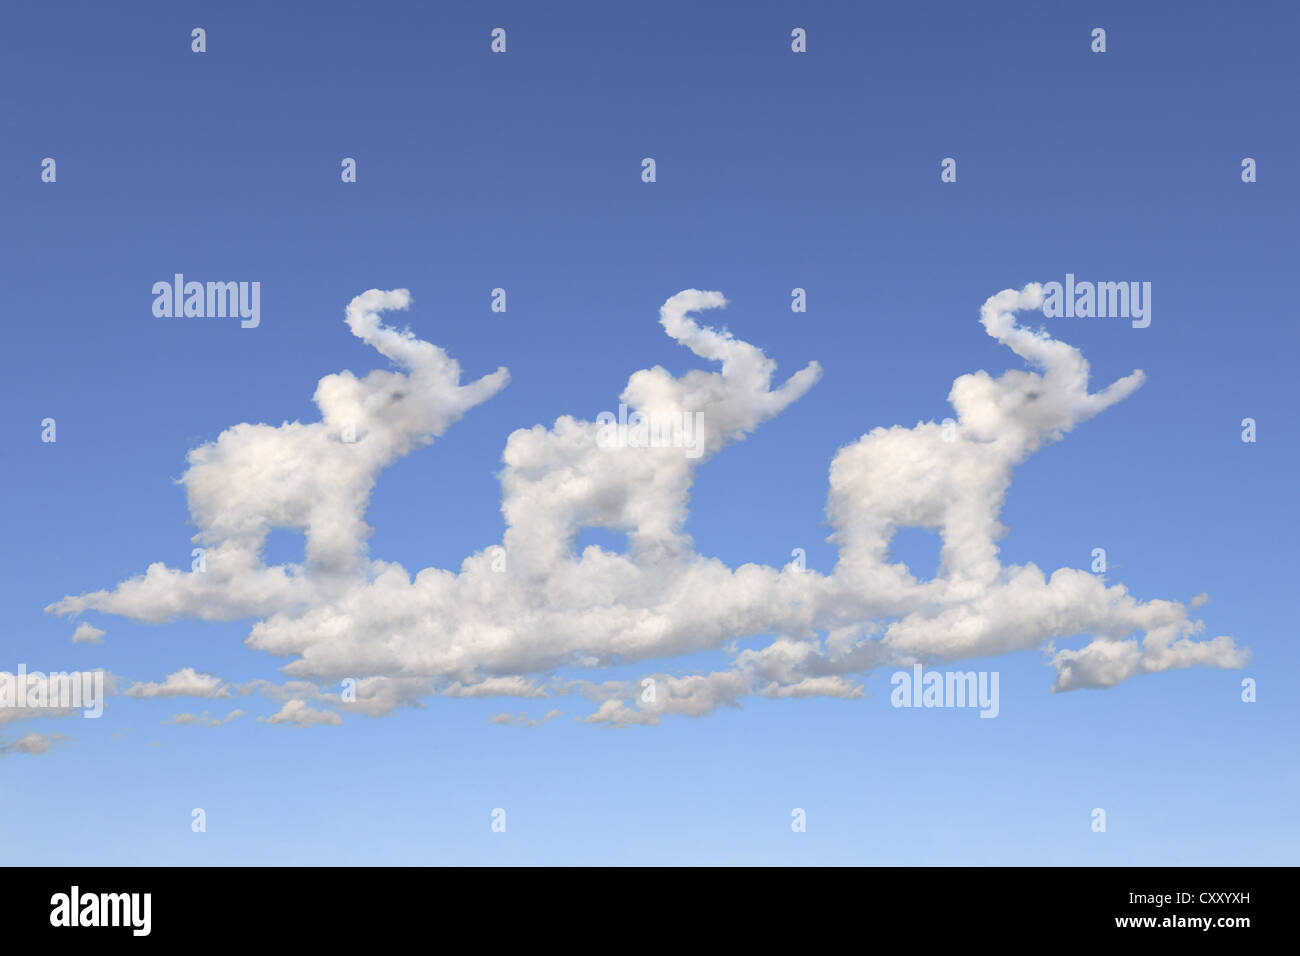 Cloud formations in the shape of thee elephants, illustration - Stock Image